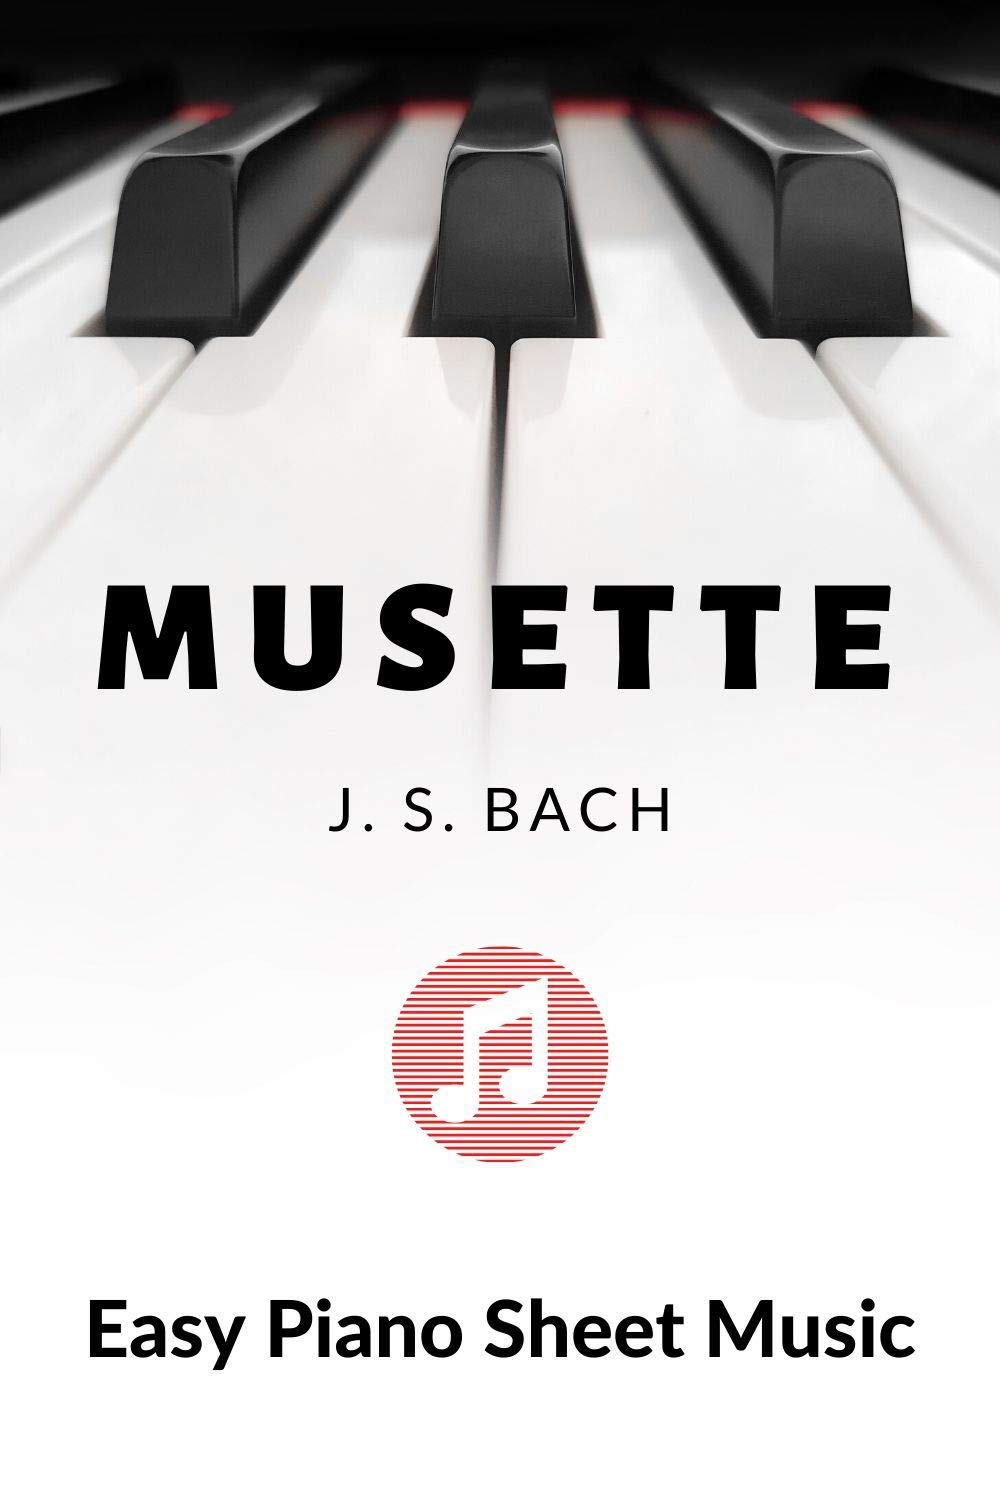 Musette in D - Johann Sebastian Bach - Easy Piano Sheet Music for Beginners - BIG Notes : Teach Yourself How to Play. Popular, Classical Song For Kids, Adults, Young Musicians, Students, Teachers.